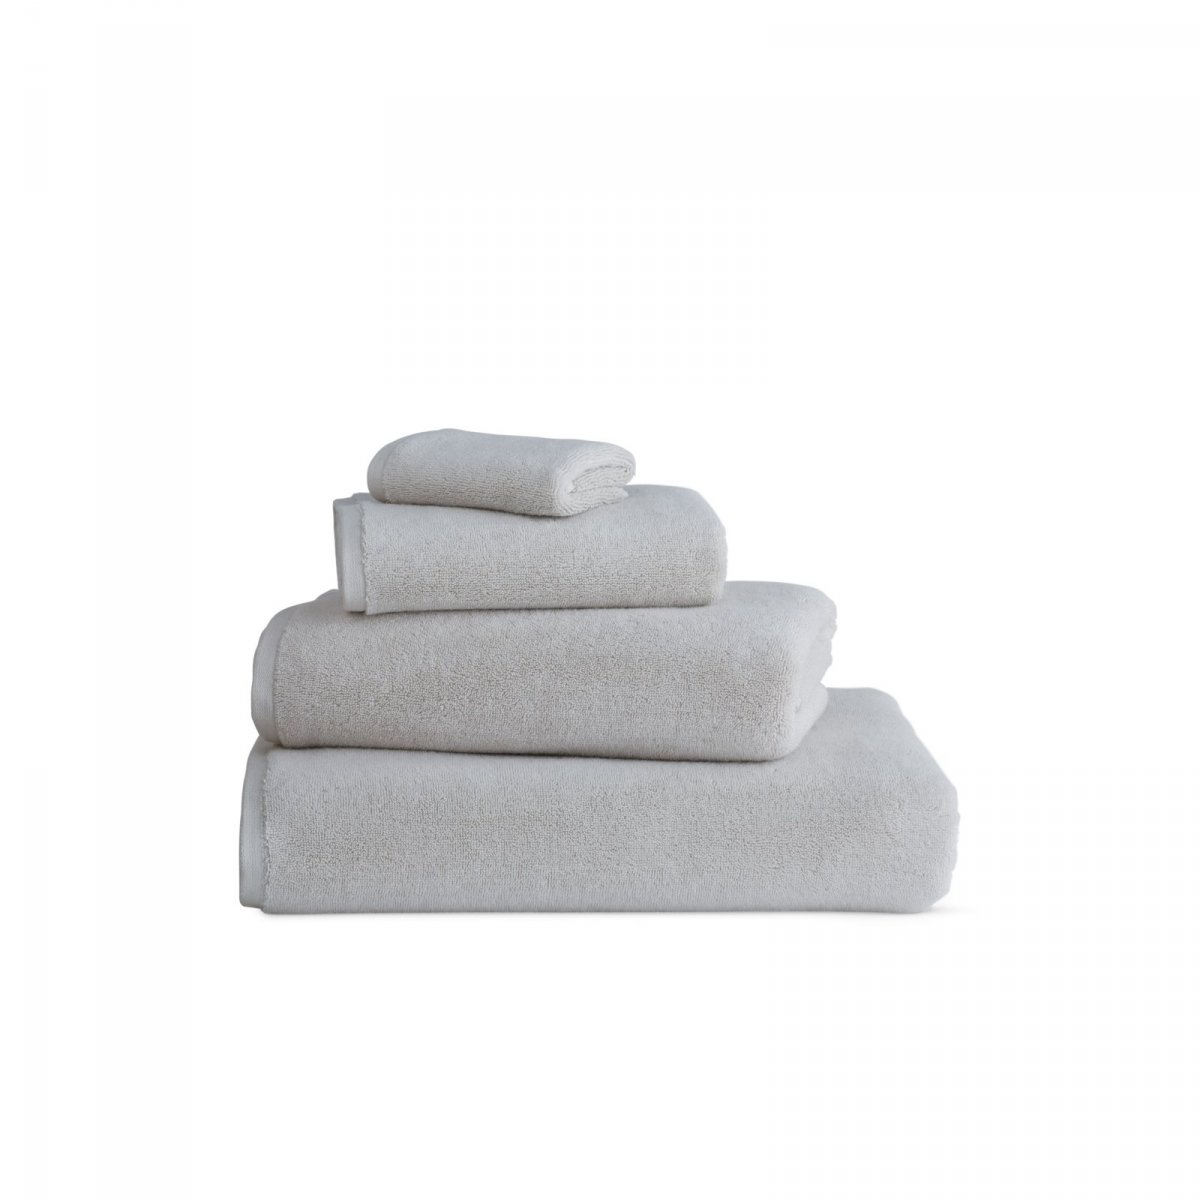 DWR Aerocotton Towels, gray.